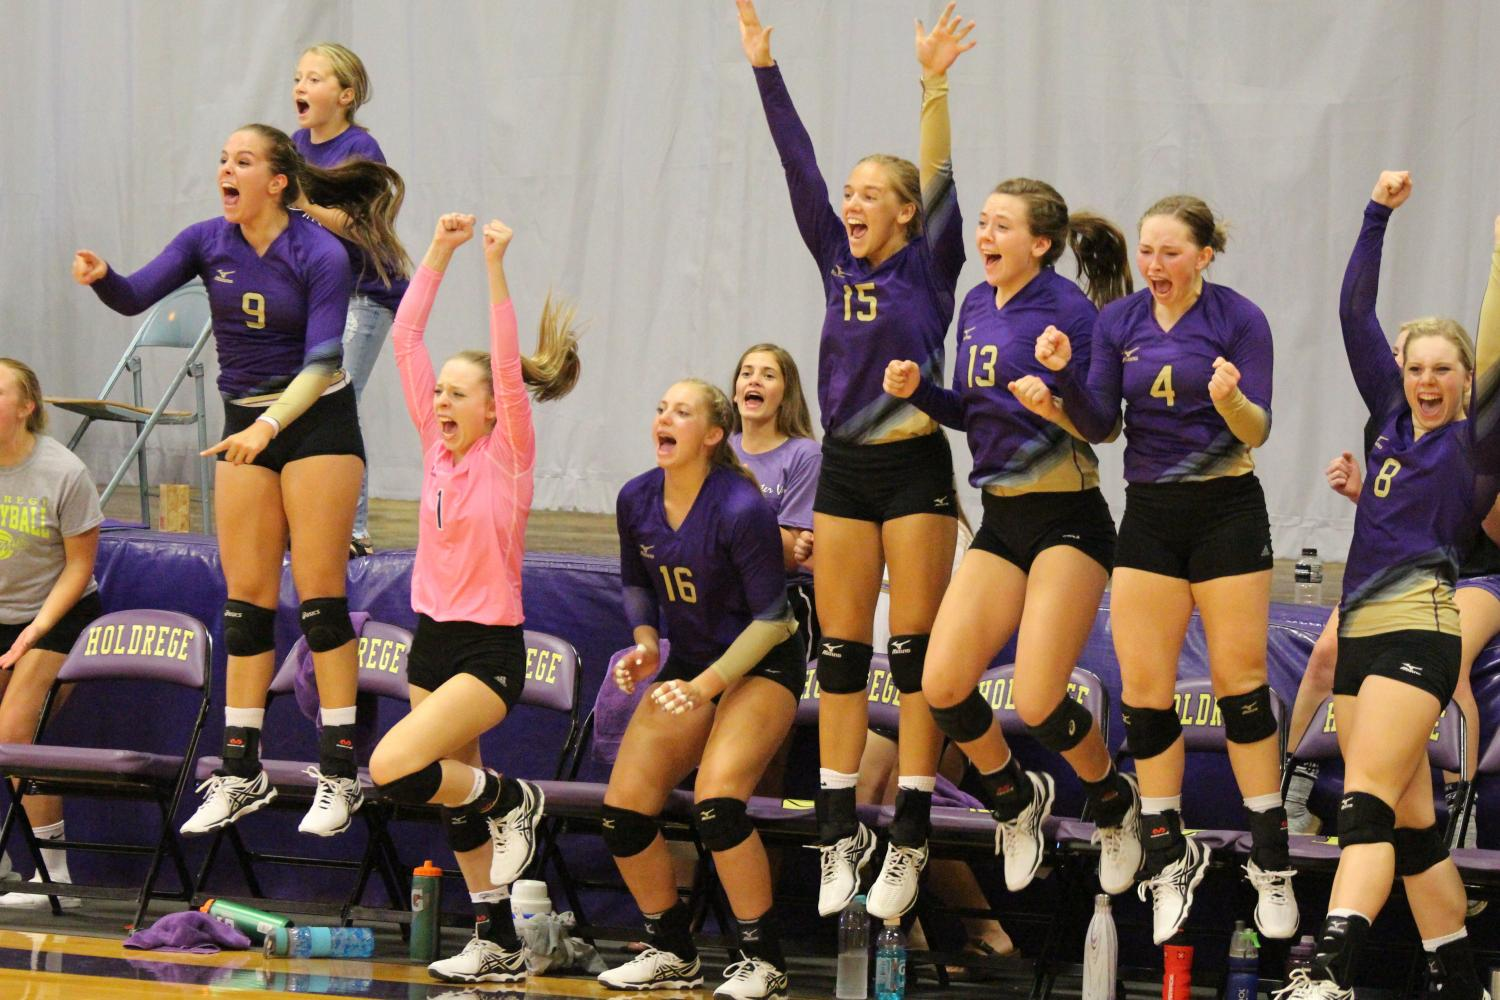 Reacting to big point, the Duster Volleyball bench cheers on their teammates.